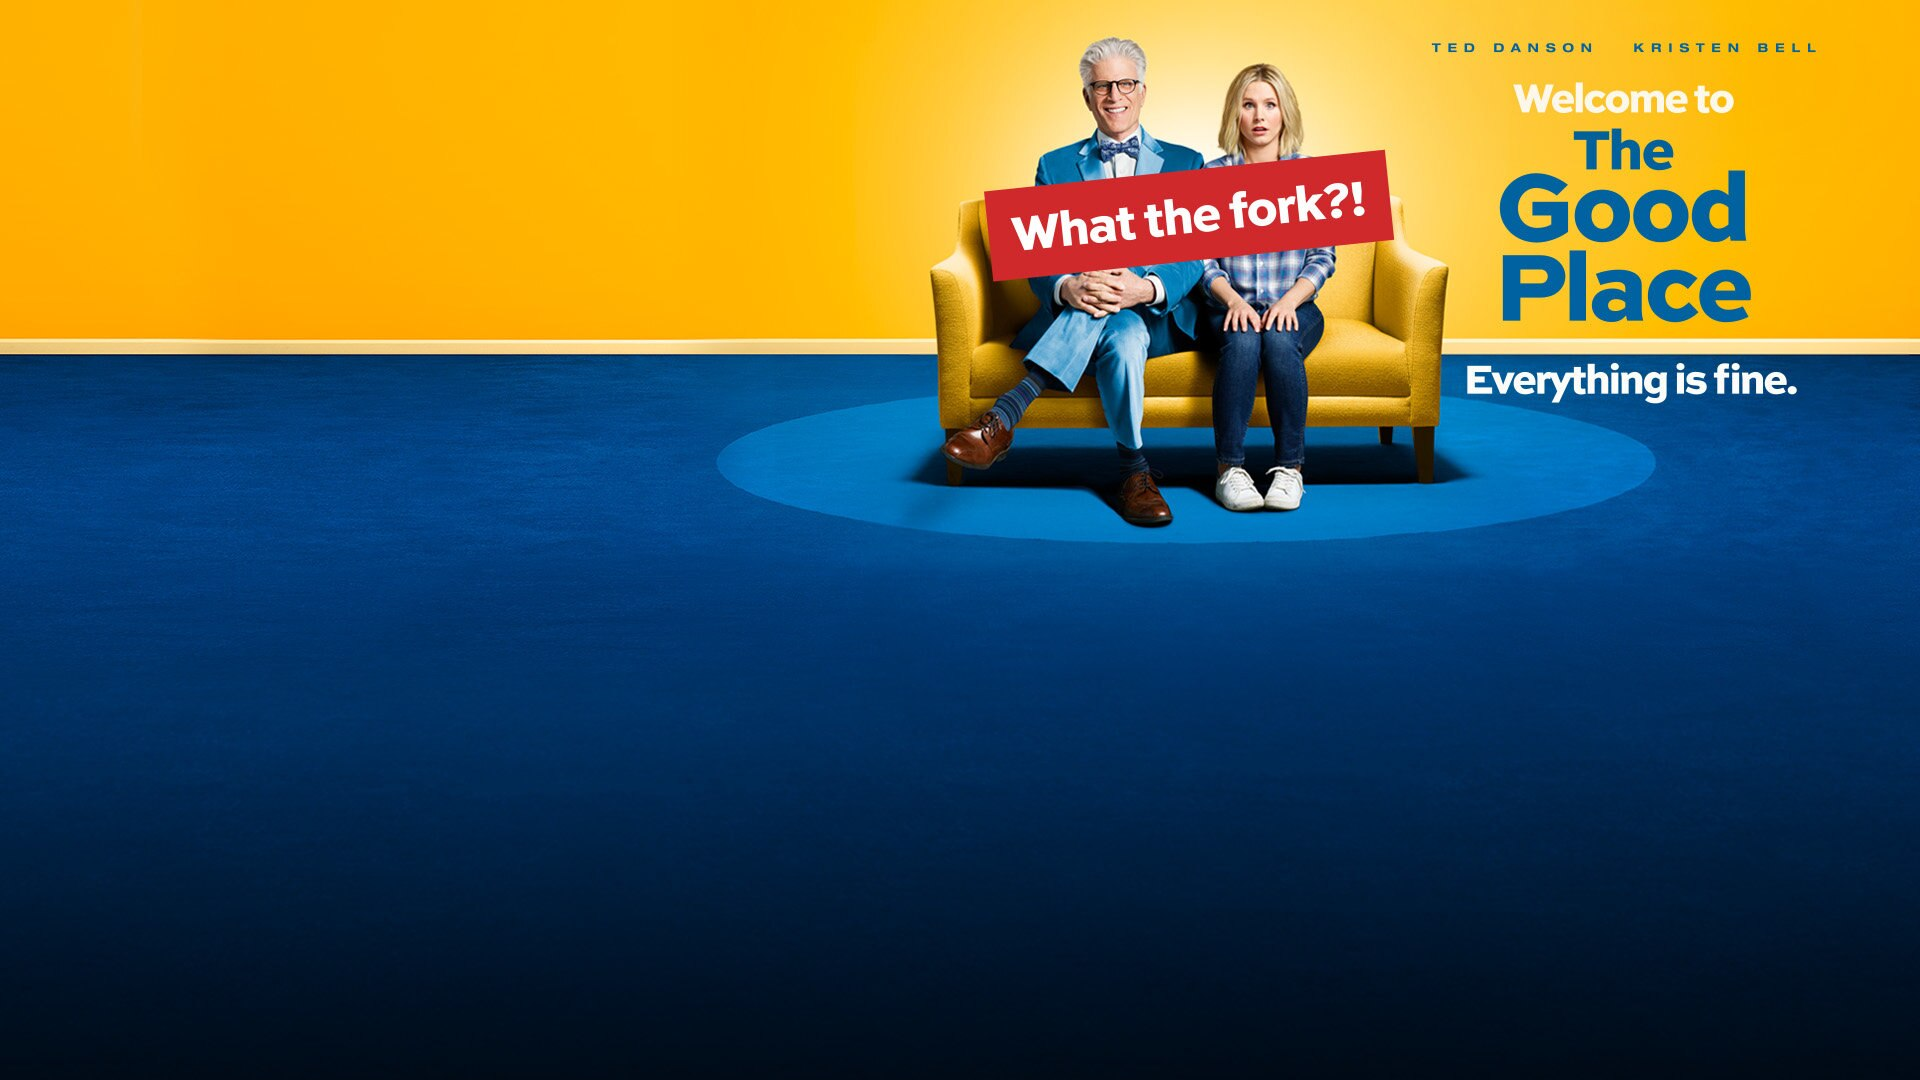 The Good Place - NEW SITE - Key Art